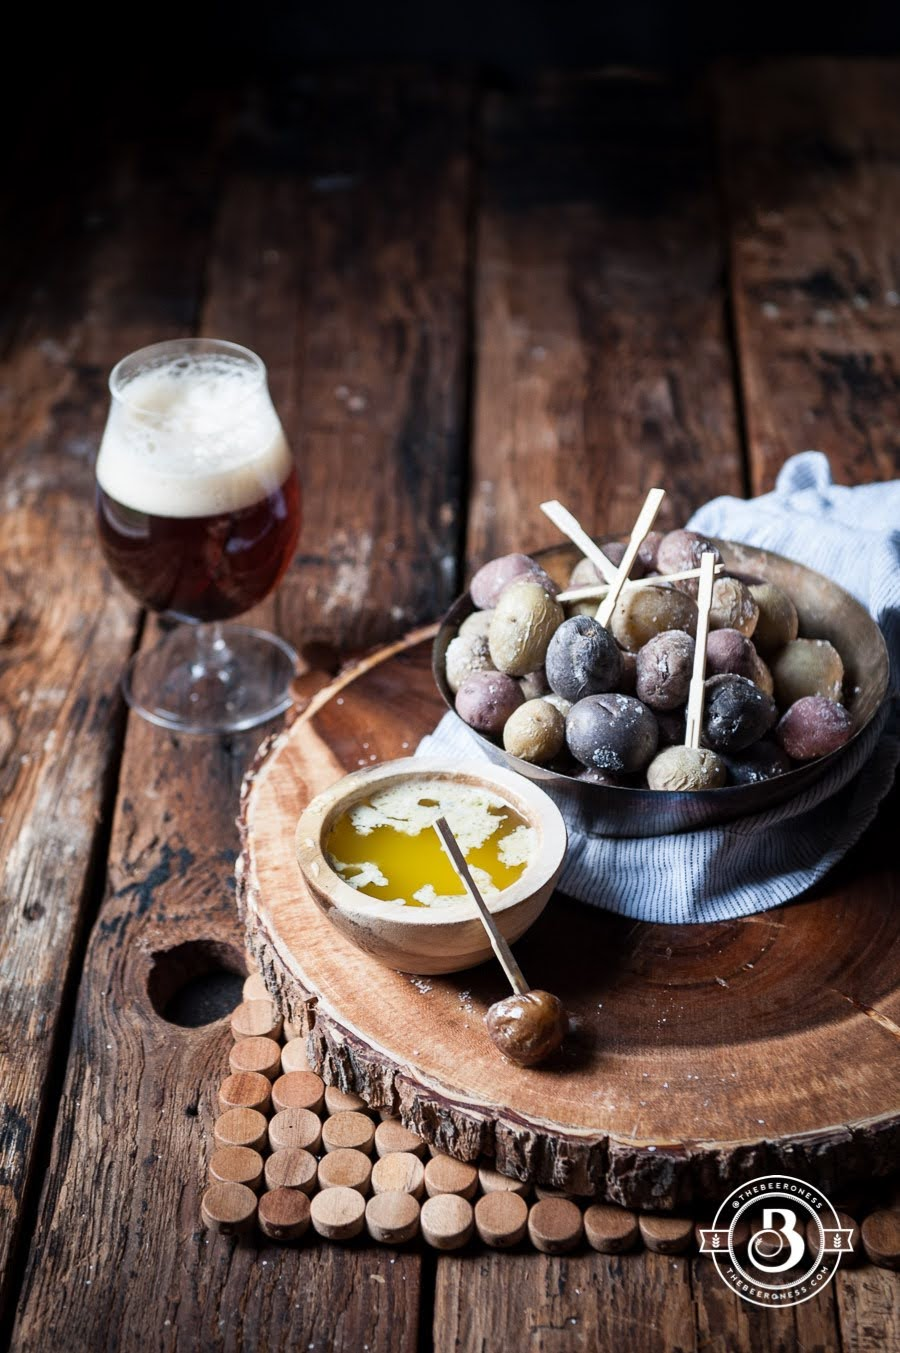 Salt Roasted Mini Potatoes with Garlic Sage Beer Butter | Courtesy of The Beeroness